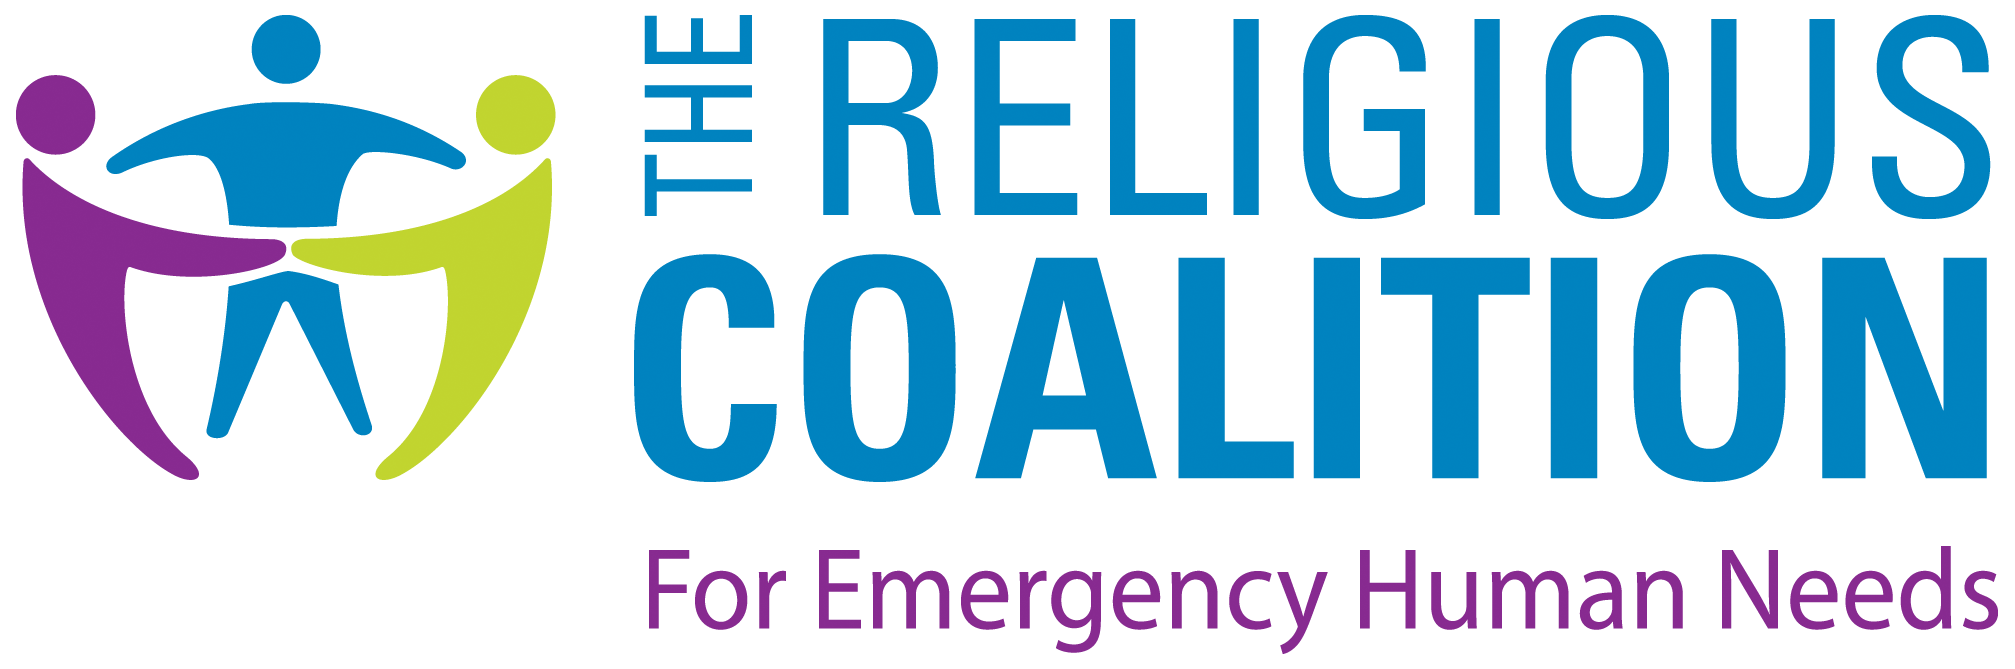 The Religious Coalition for Emergency Human Needs